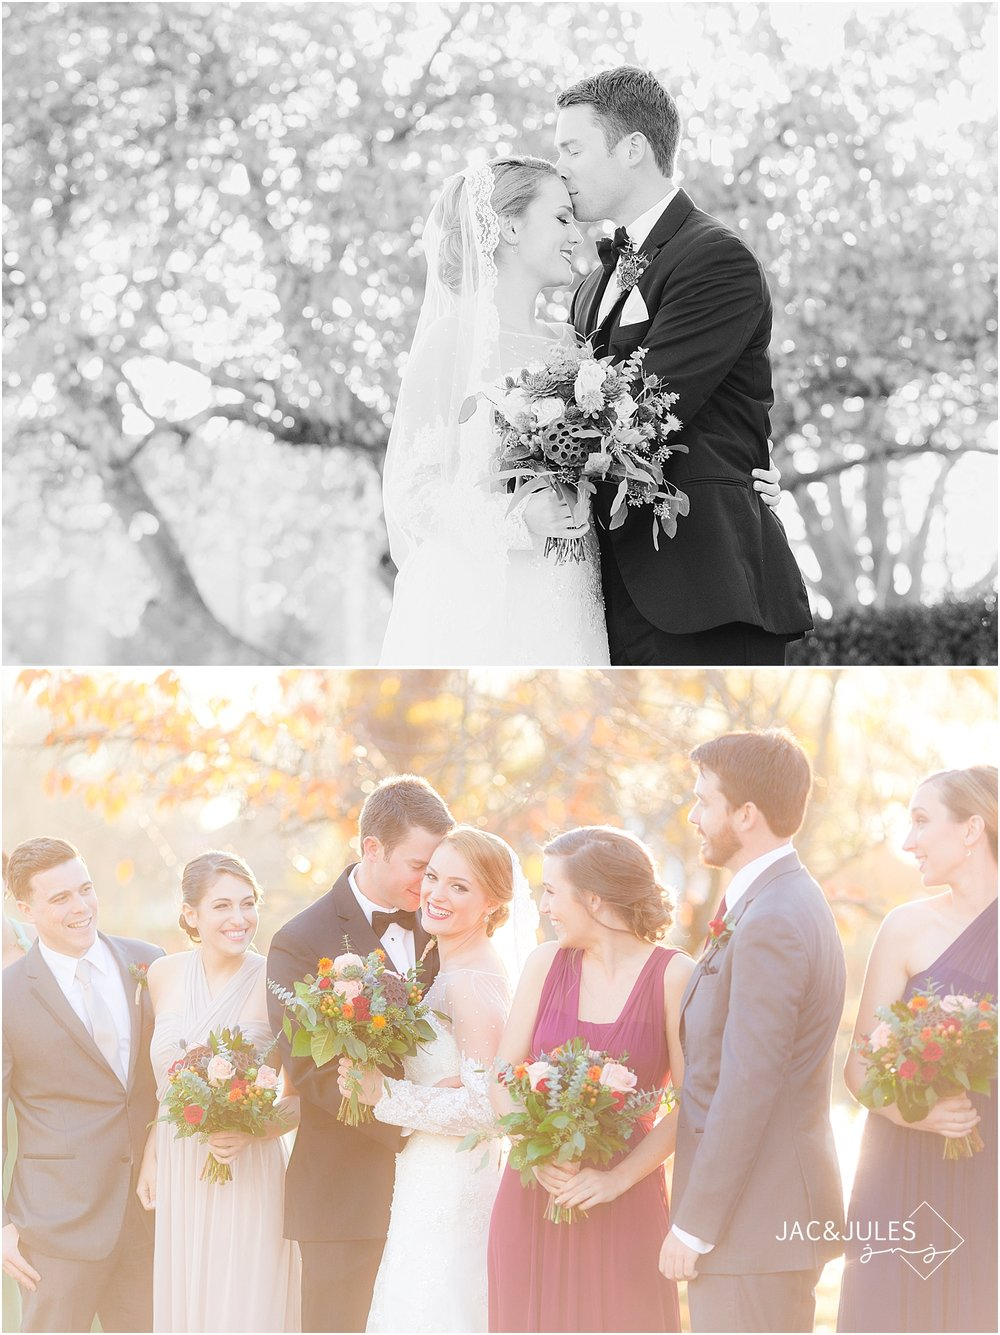 jacnjules photograph fall wedding at St. Catherine's in Spring Lake, NJ